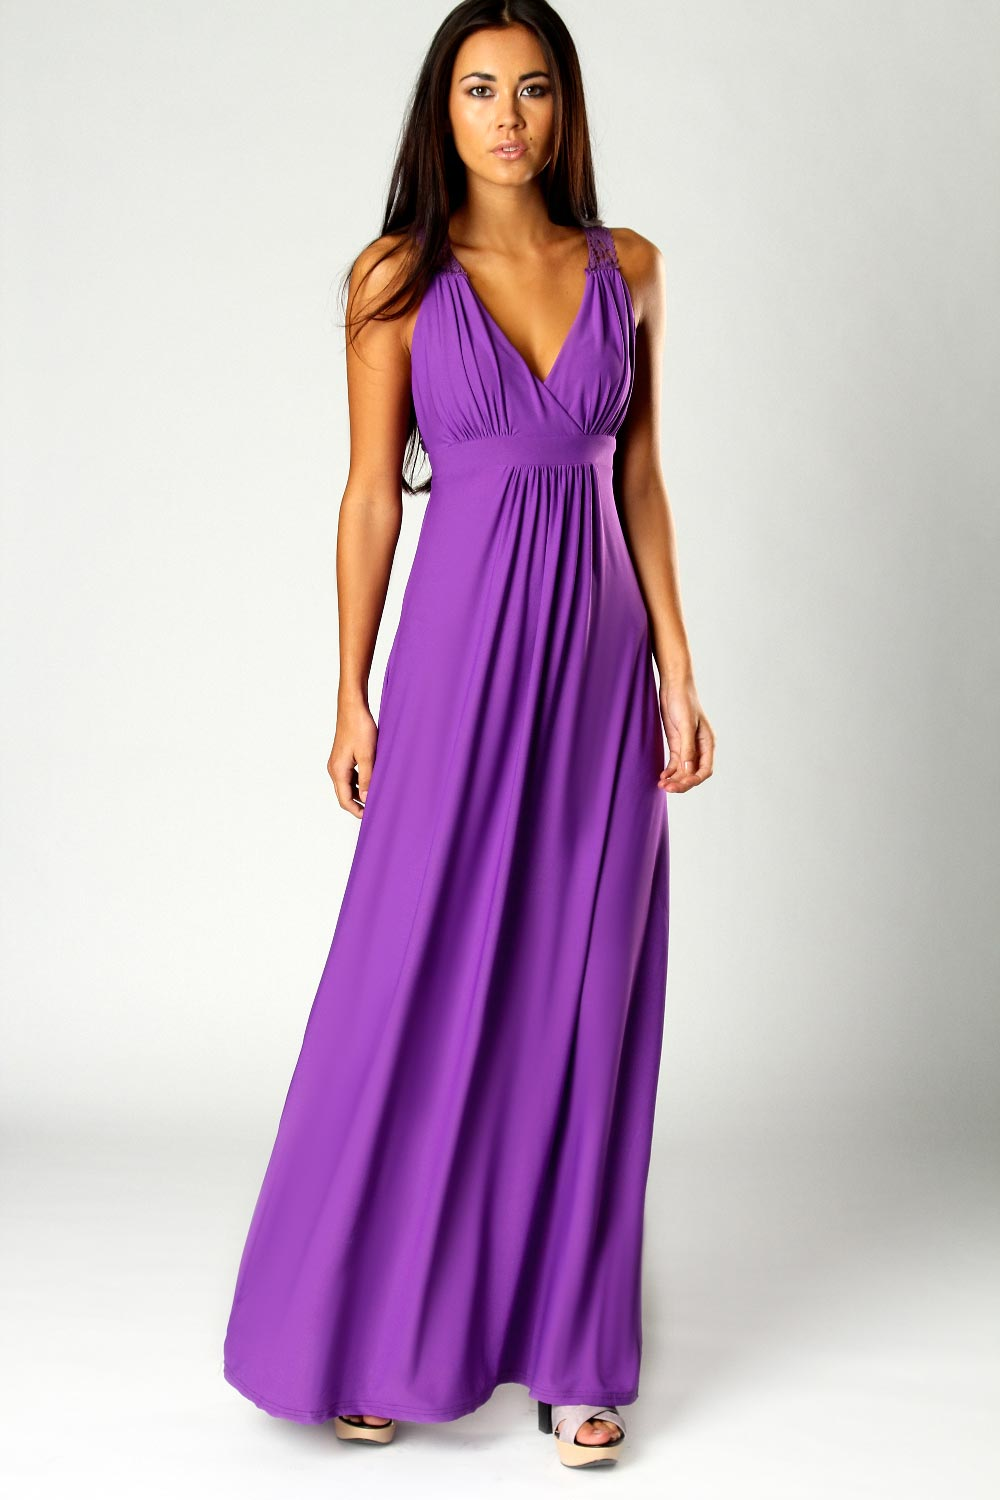 Boohoo Jess Crossover Front Lace Back Maxi Dress in Purple